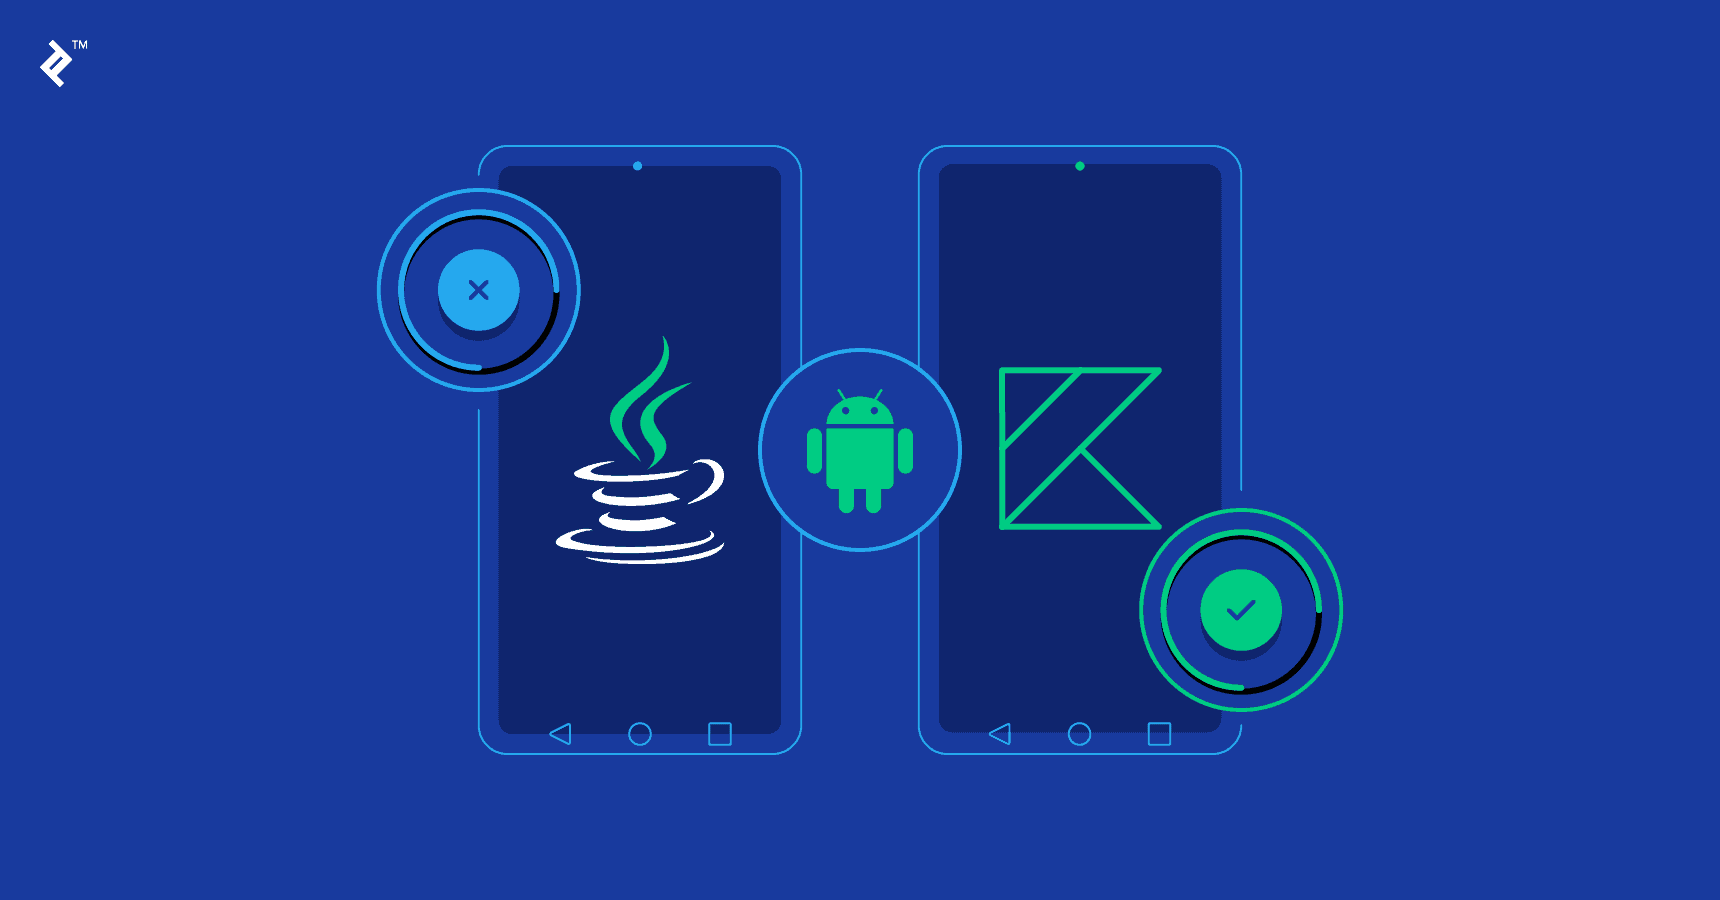 The Android Development eBook and Video Course Super Bundle